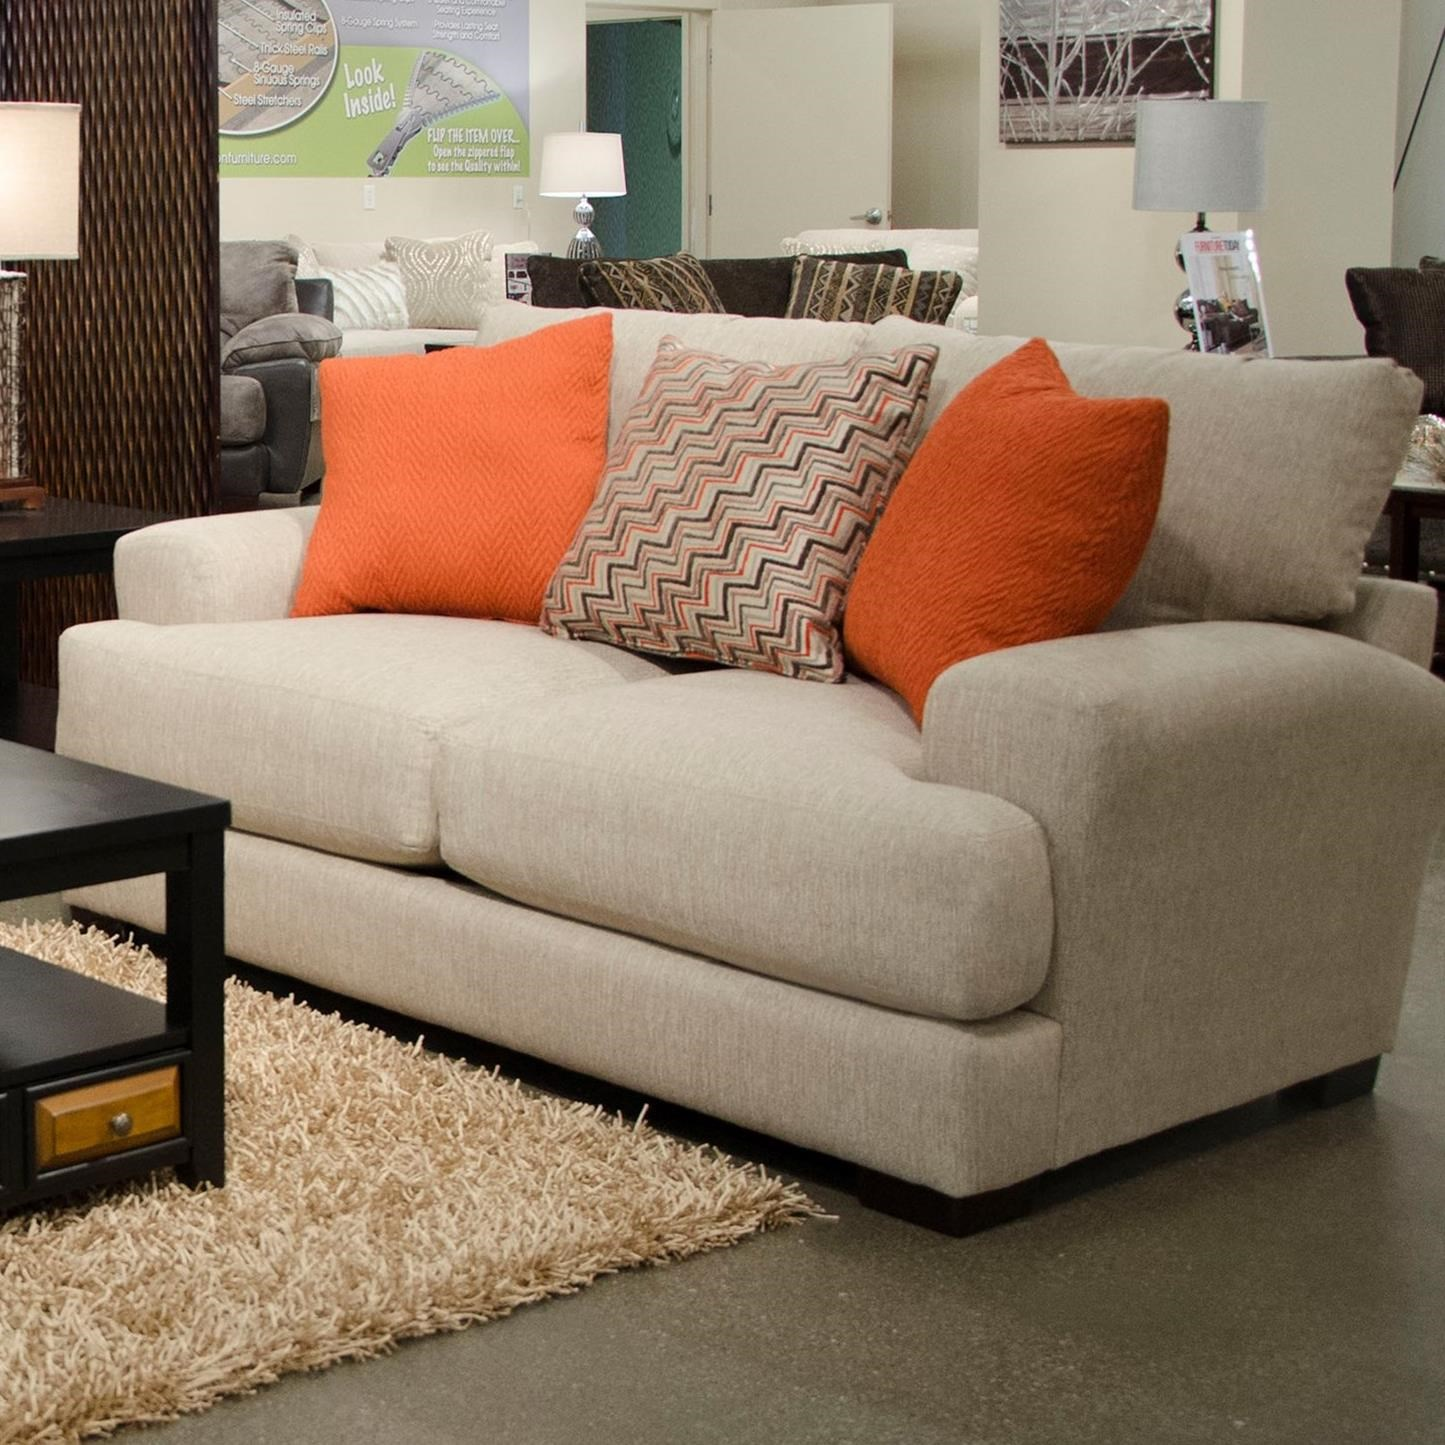 Loveseat By Jackson Furniture Wolf Furniture